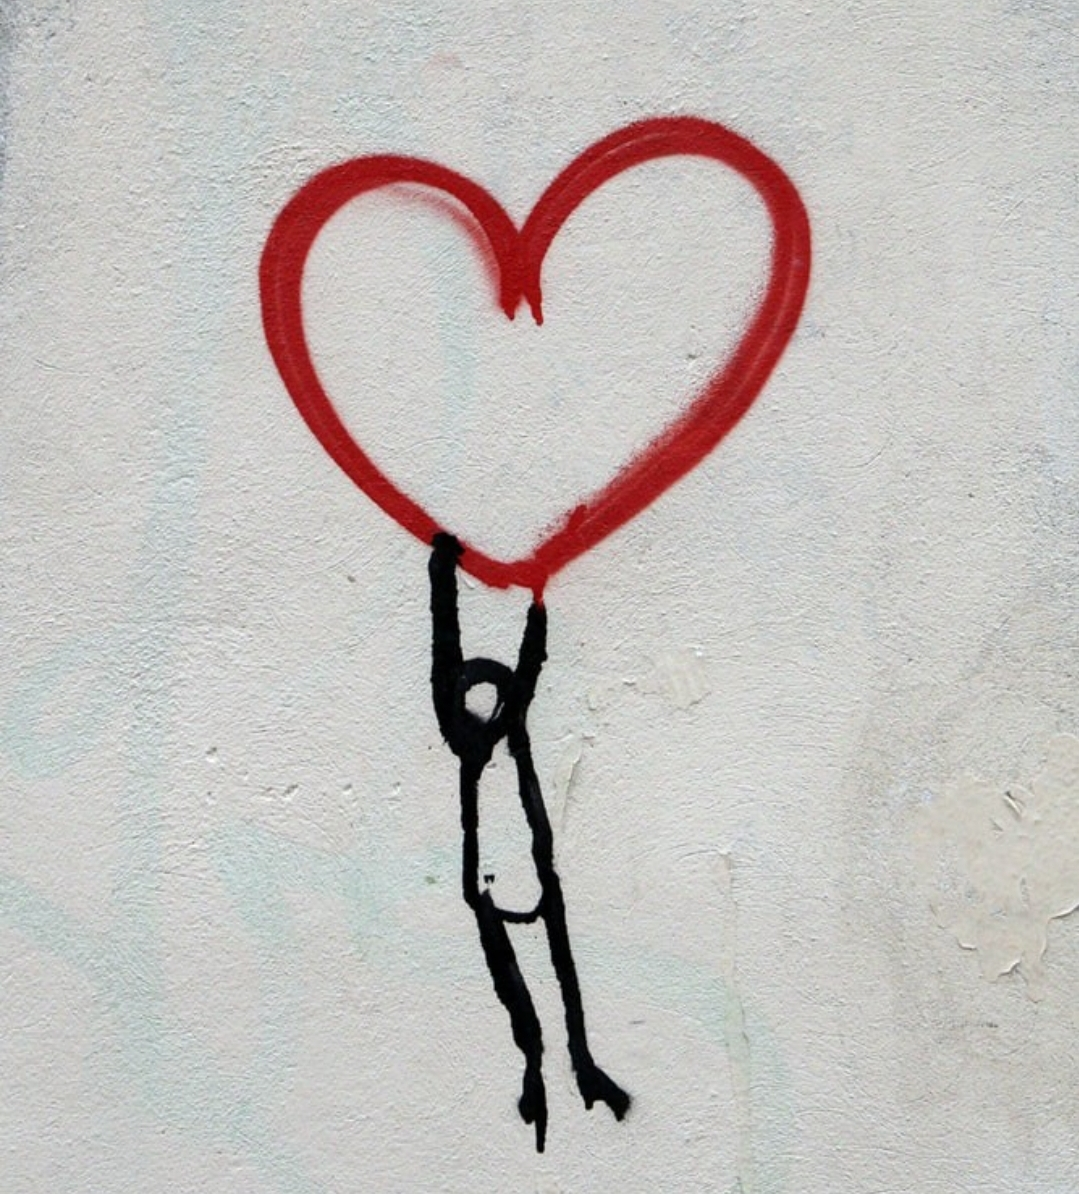 A black stick figure holds a red heart above its head. Photo courtesy of Stacie Bruillant.